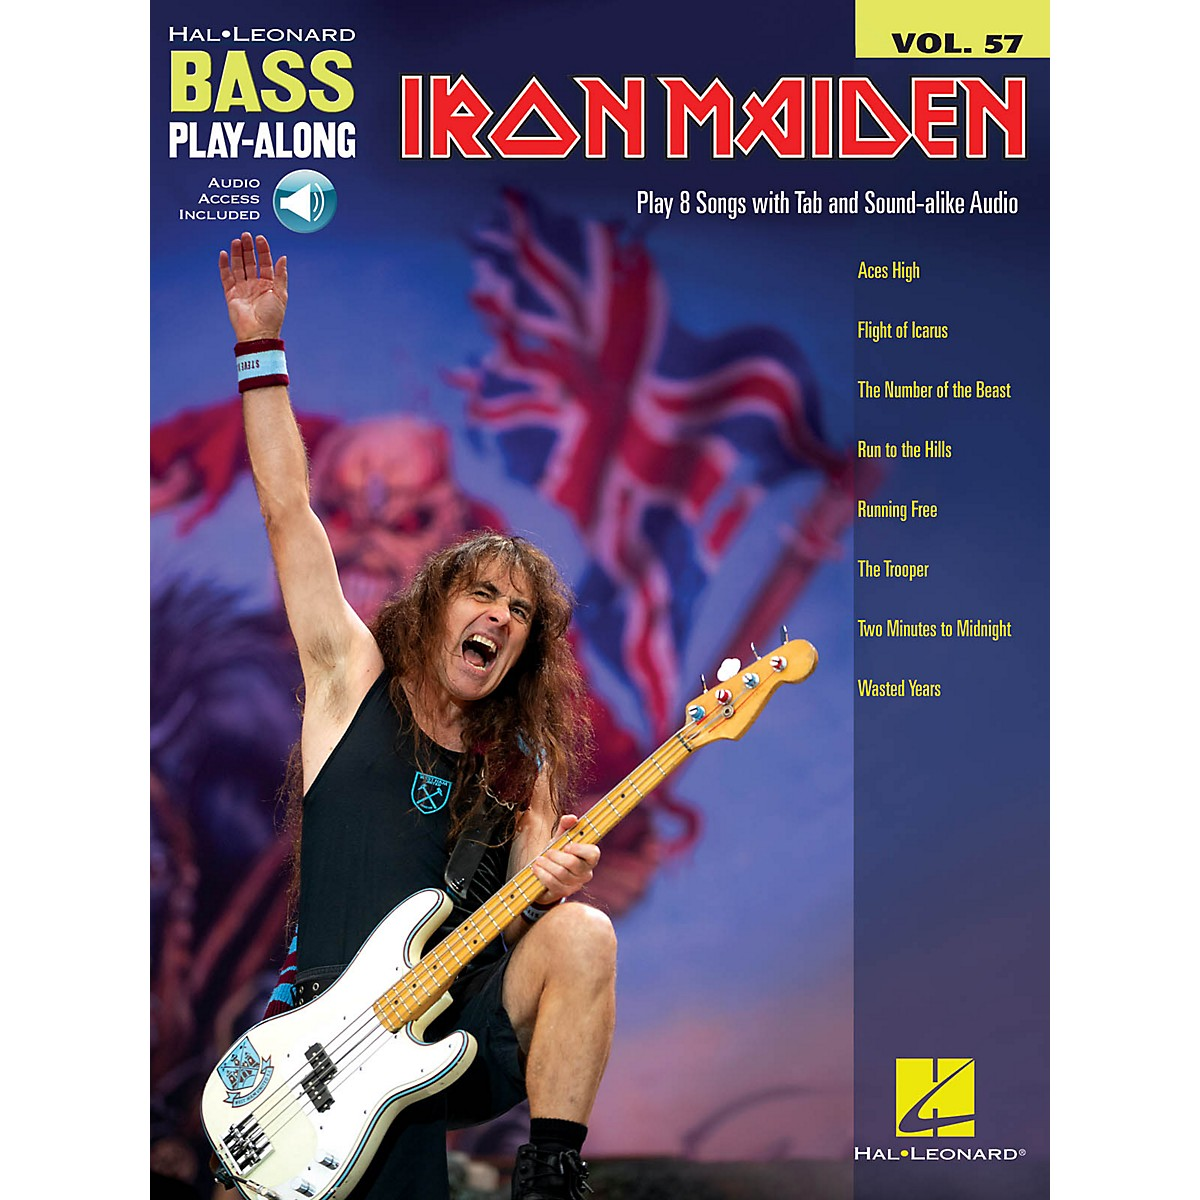 Hal Leonard Iron Maiden Bass Play-Along Volume 57 Book/Audio Online